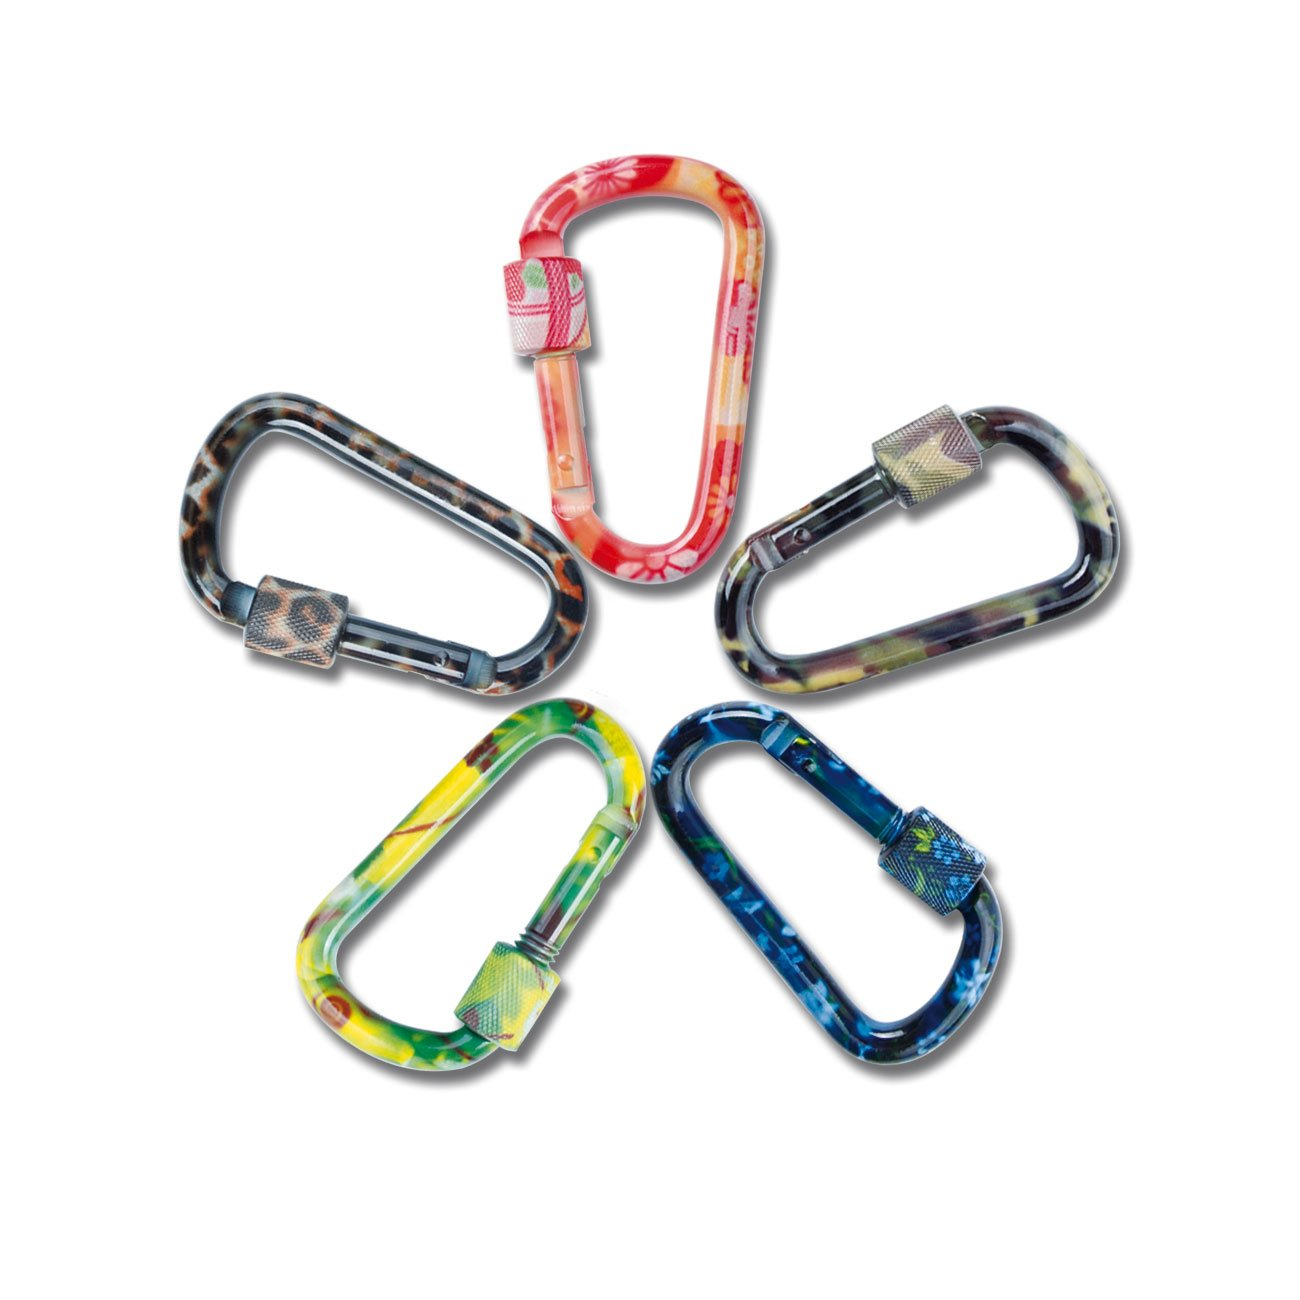 Water Bottle Fishing Used for Camping D Shape Buckle Pack Light Weight Spring Loaded Eastern Horses 5PCS 3 inch Carabiner Keychain Aluminum Random Multiple Color Traveling Hiking Badge